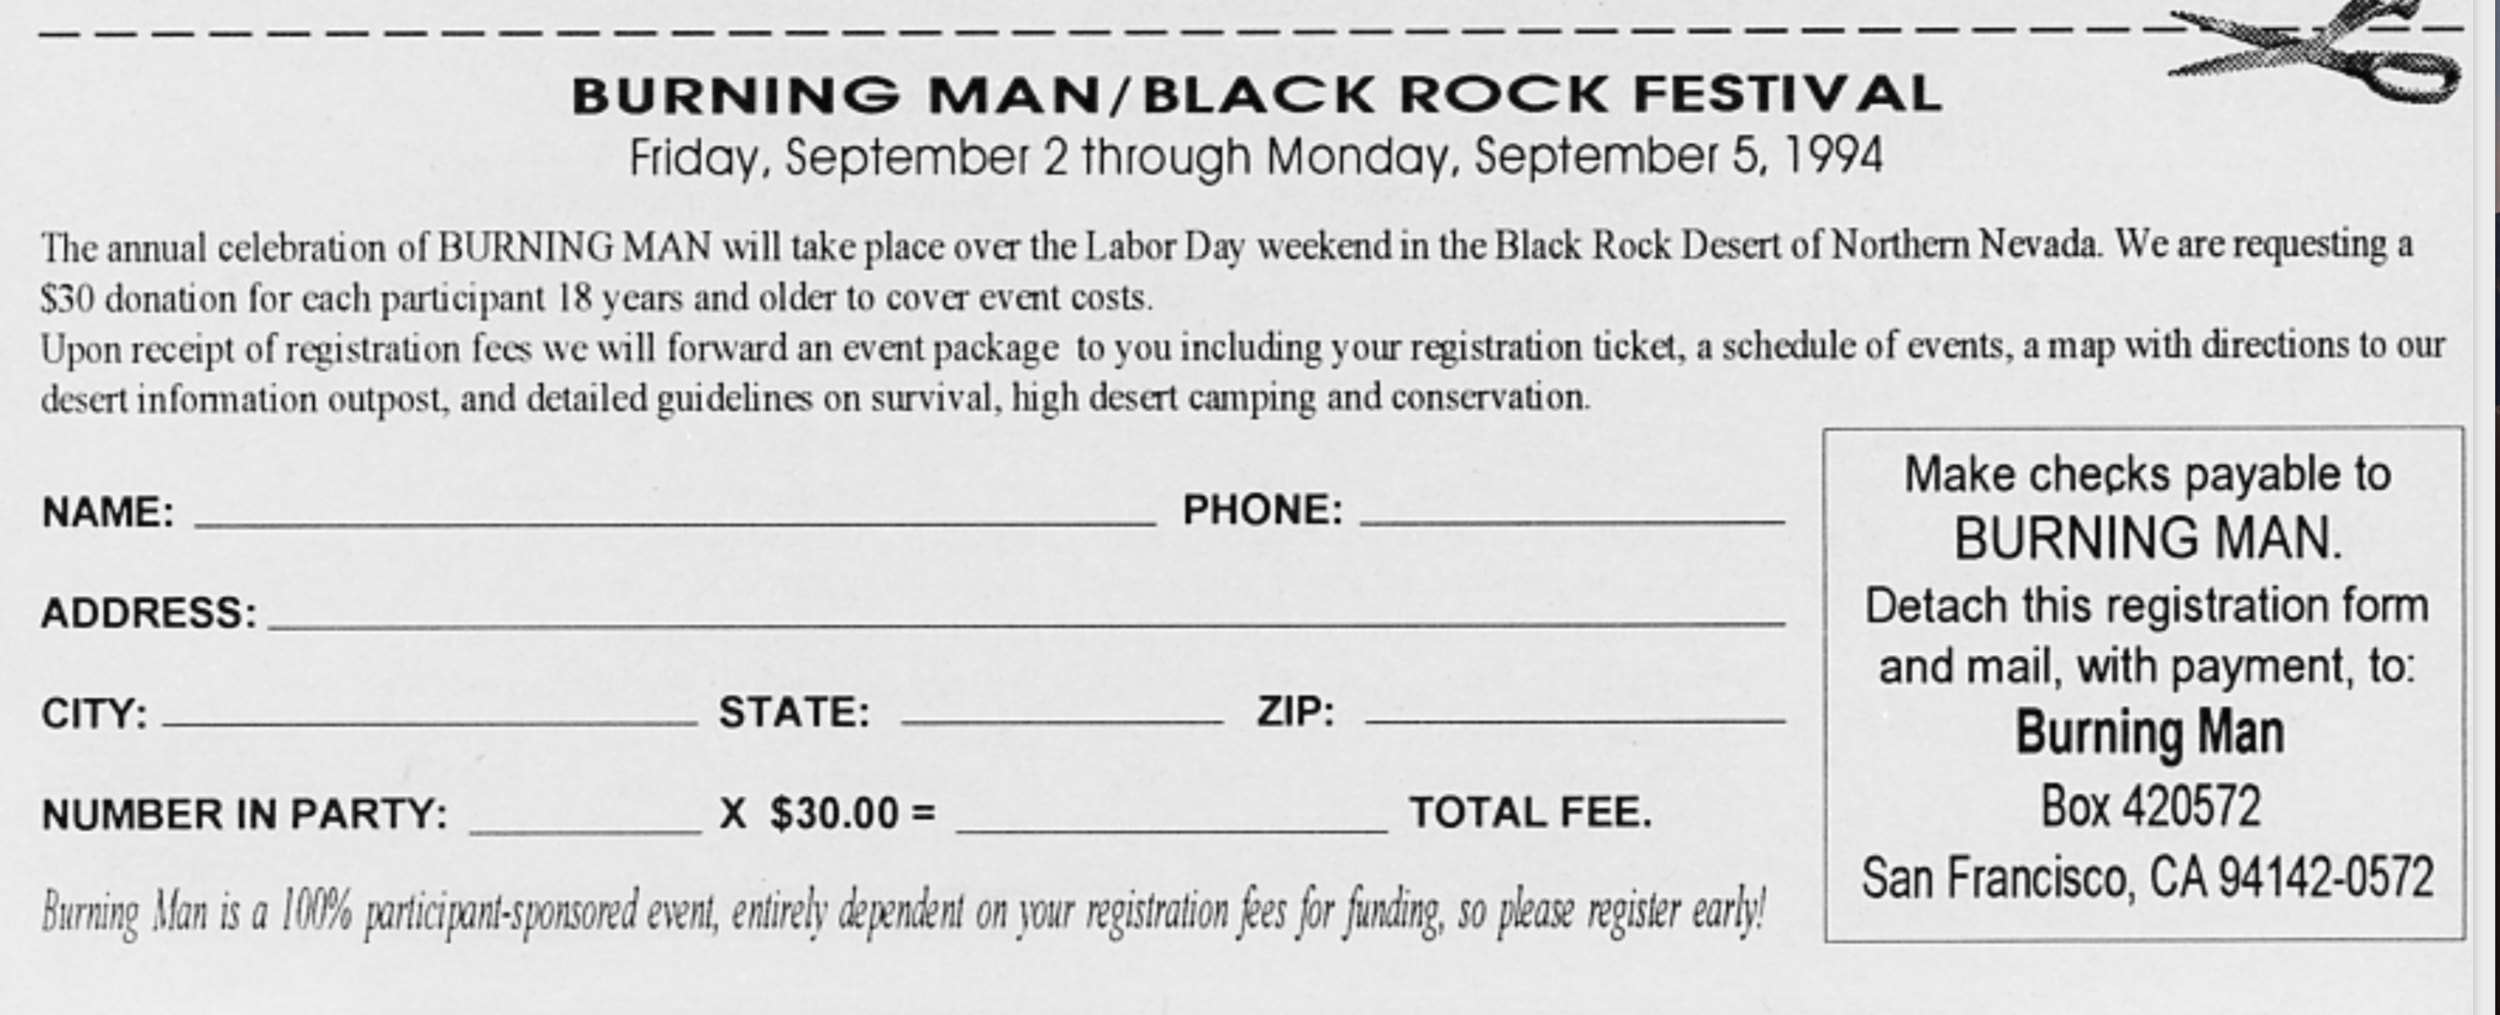 1994 Burning Man Registration - a $30 donation was requested and a ticket issued.